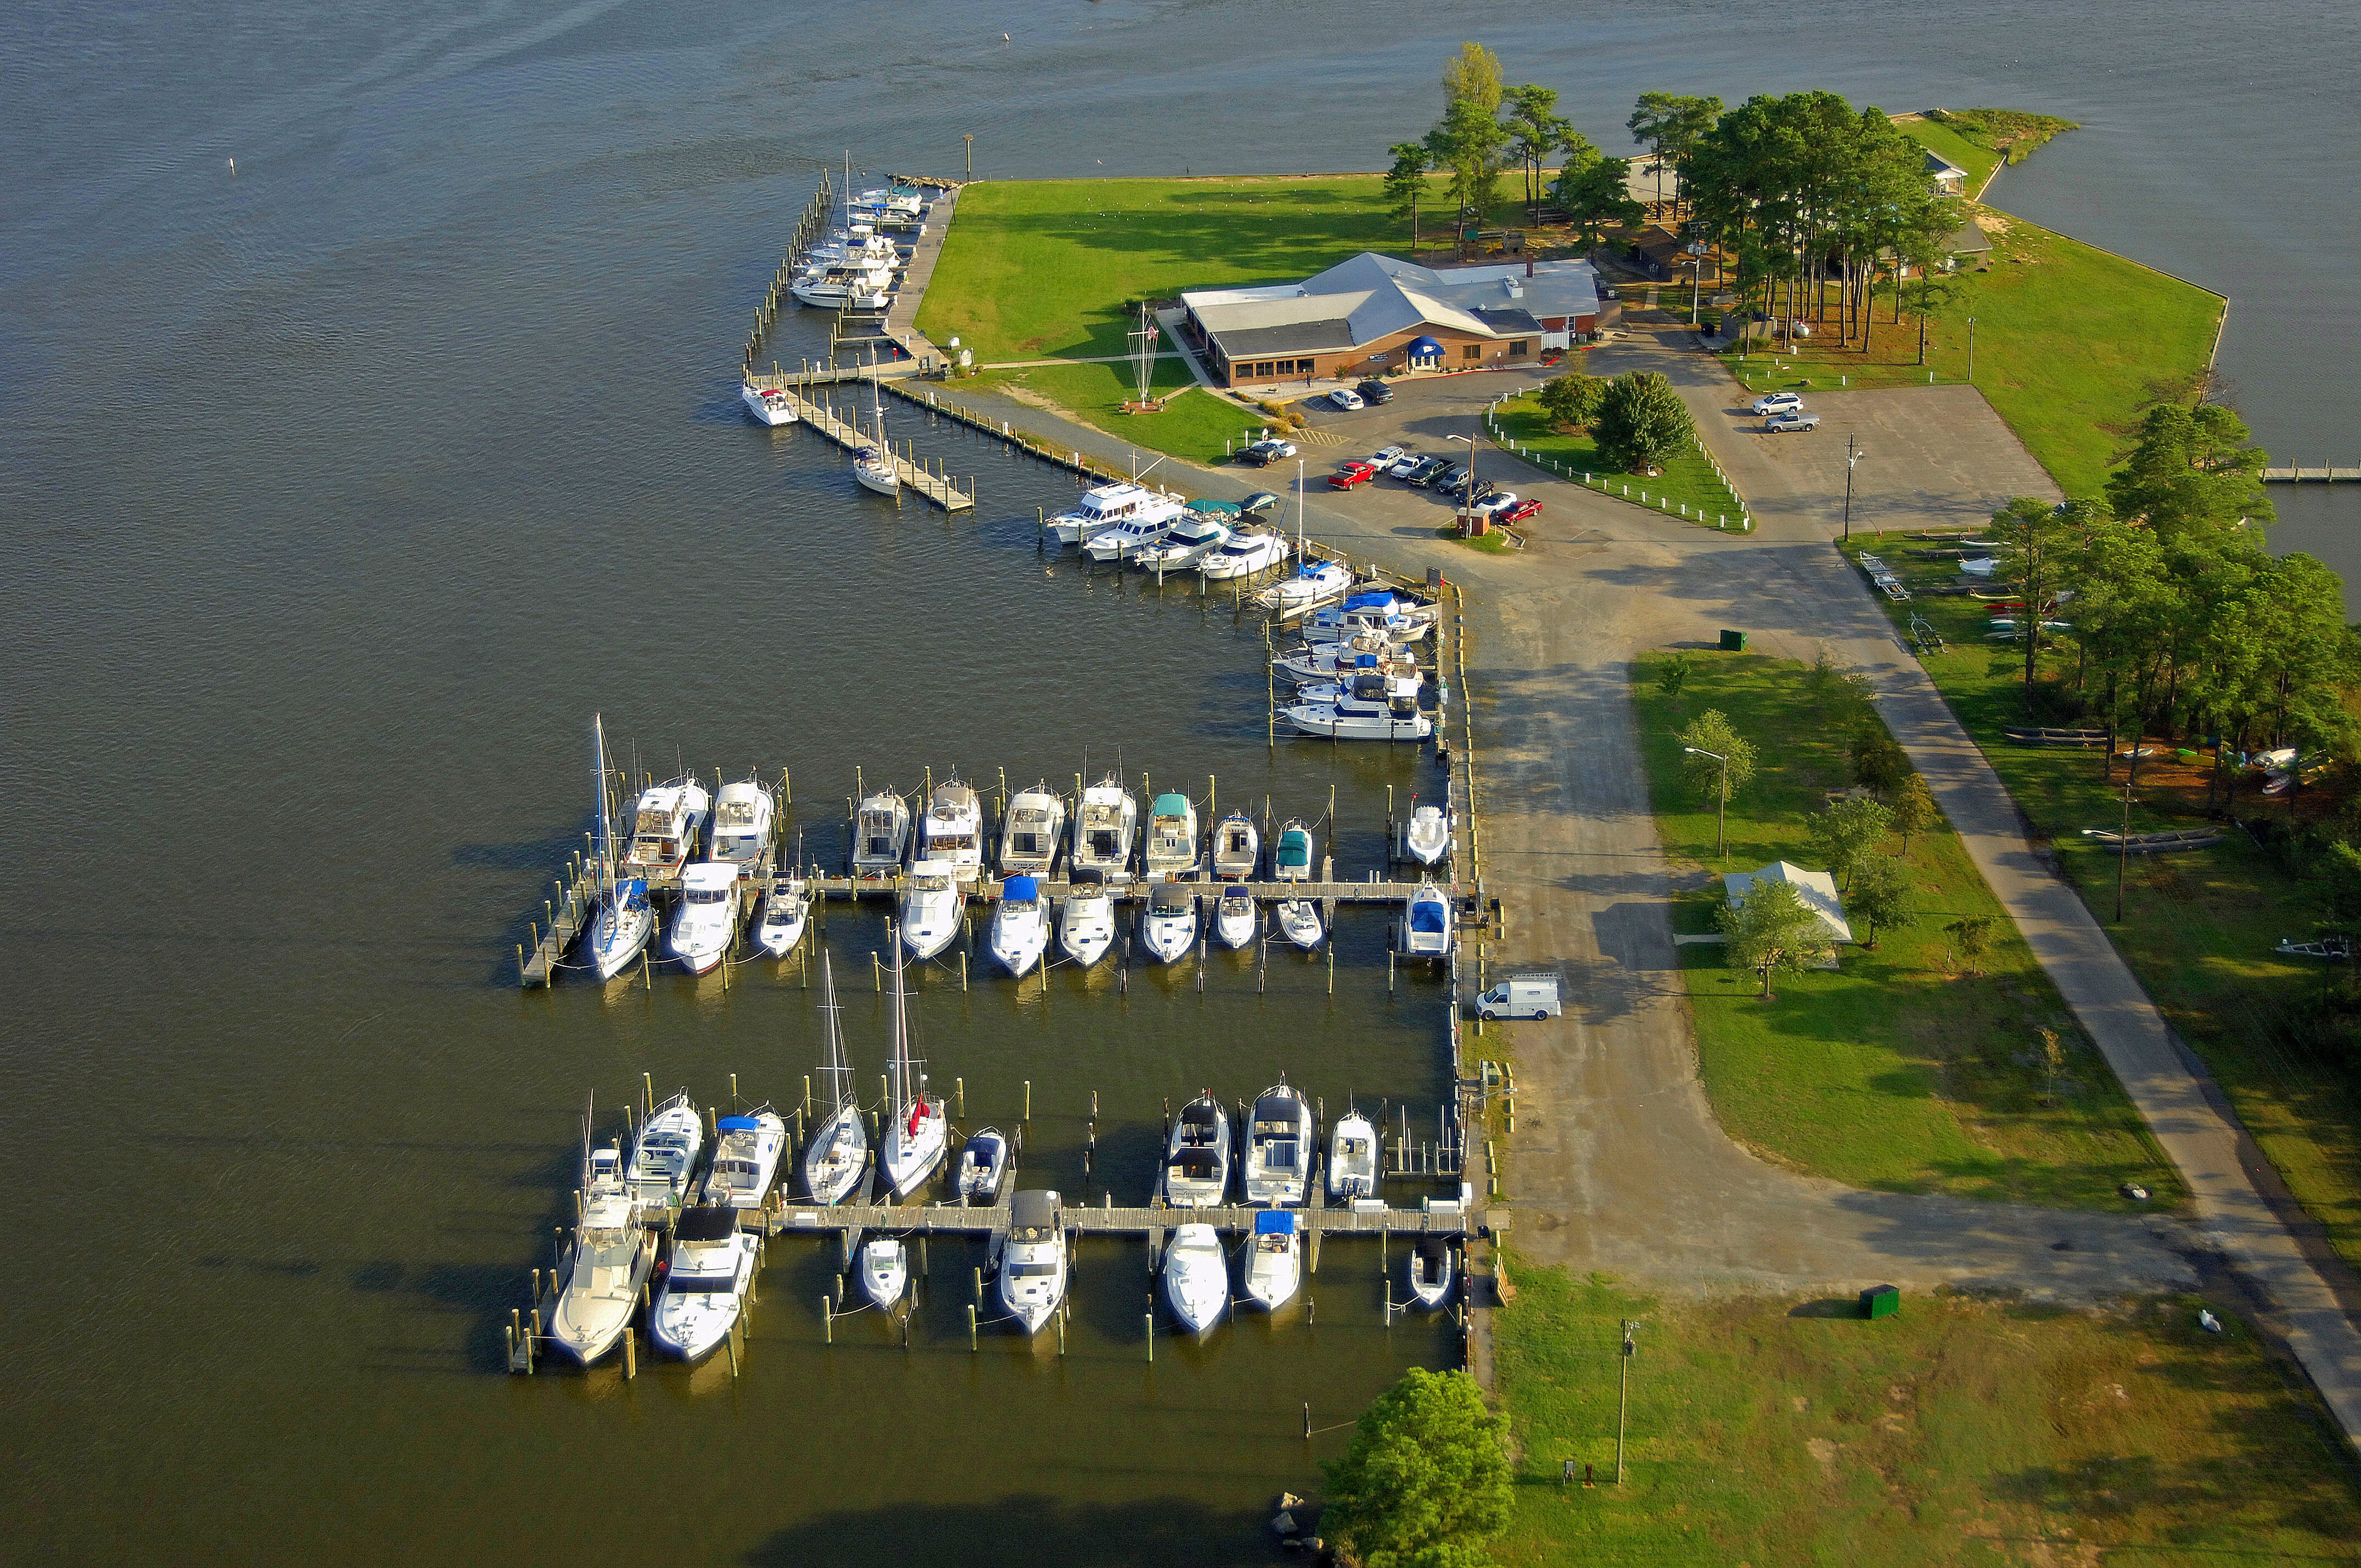 kent island yacht club in chester  md  united states